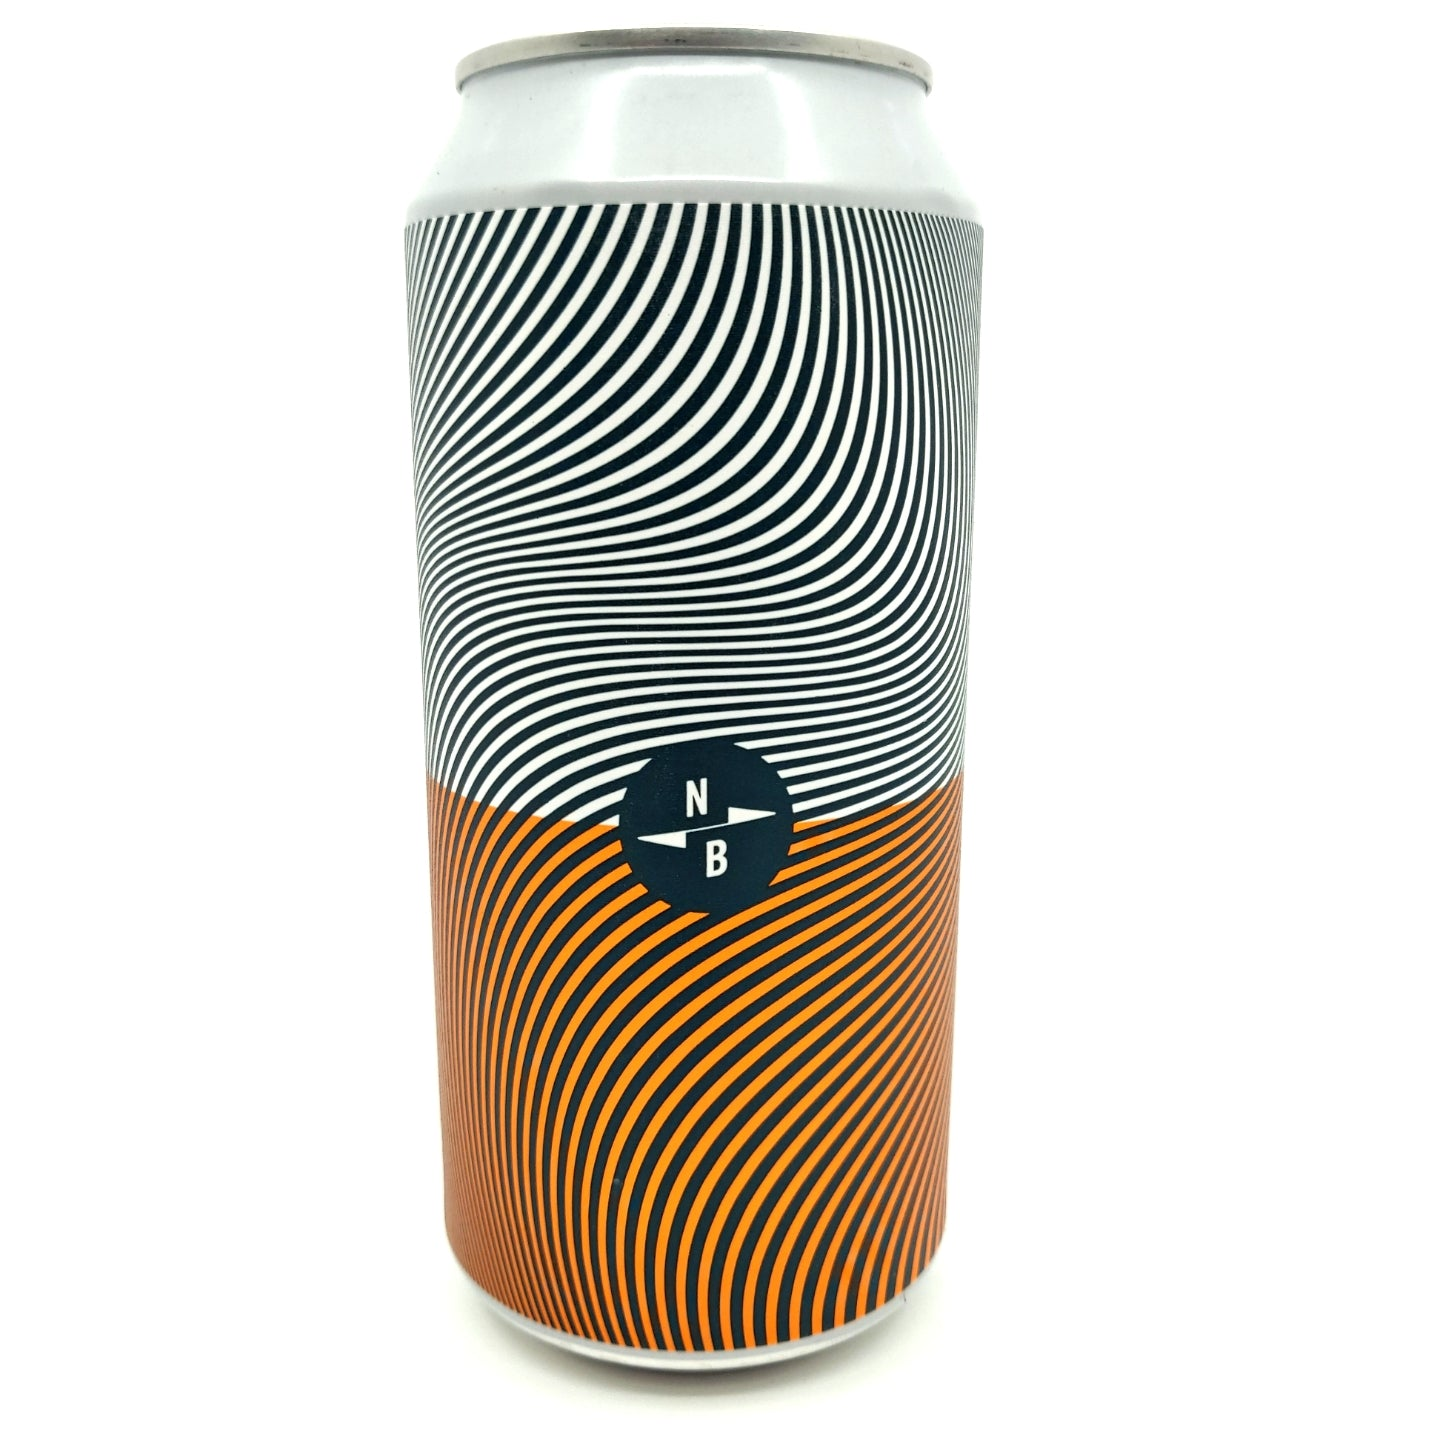 North Brewing Co Triple Fruited Gose White Guava & Orange Peel 4.1% (440ml can)-Hop Burns & Black